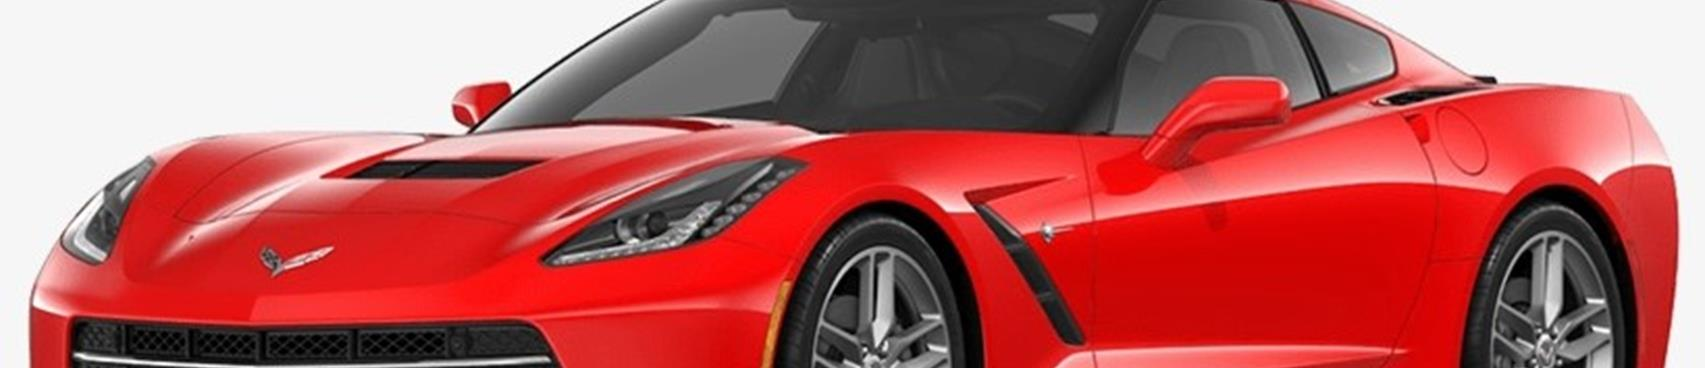 Purchase Tickets to Corvette Car Show - Blue Victorian Winery at Vezer Family Vineyard on CellarPass